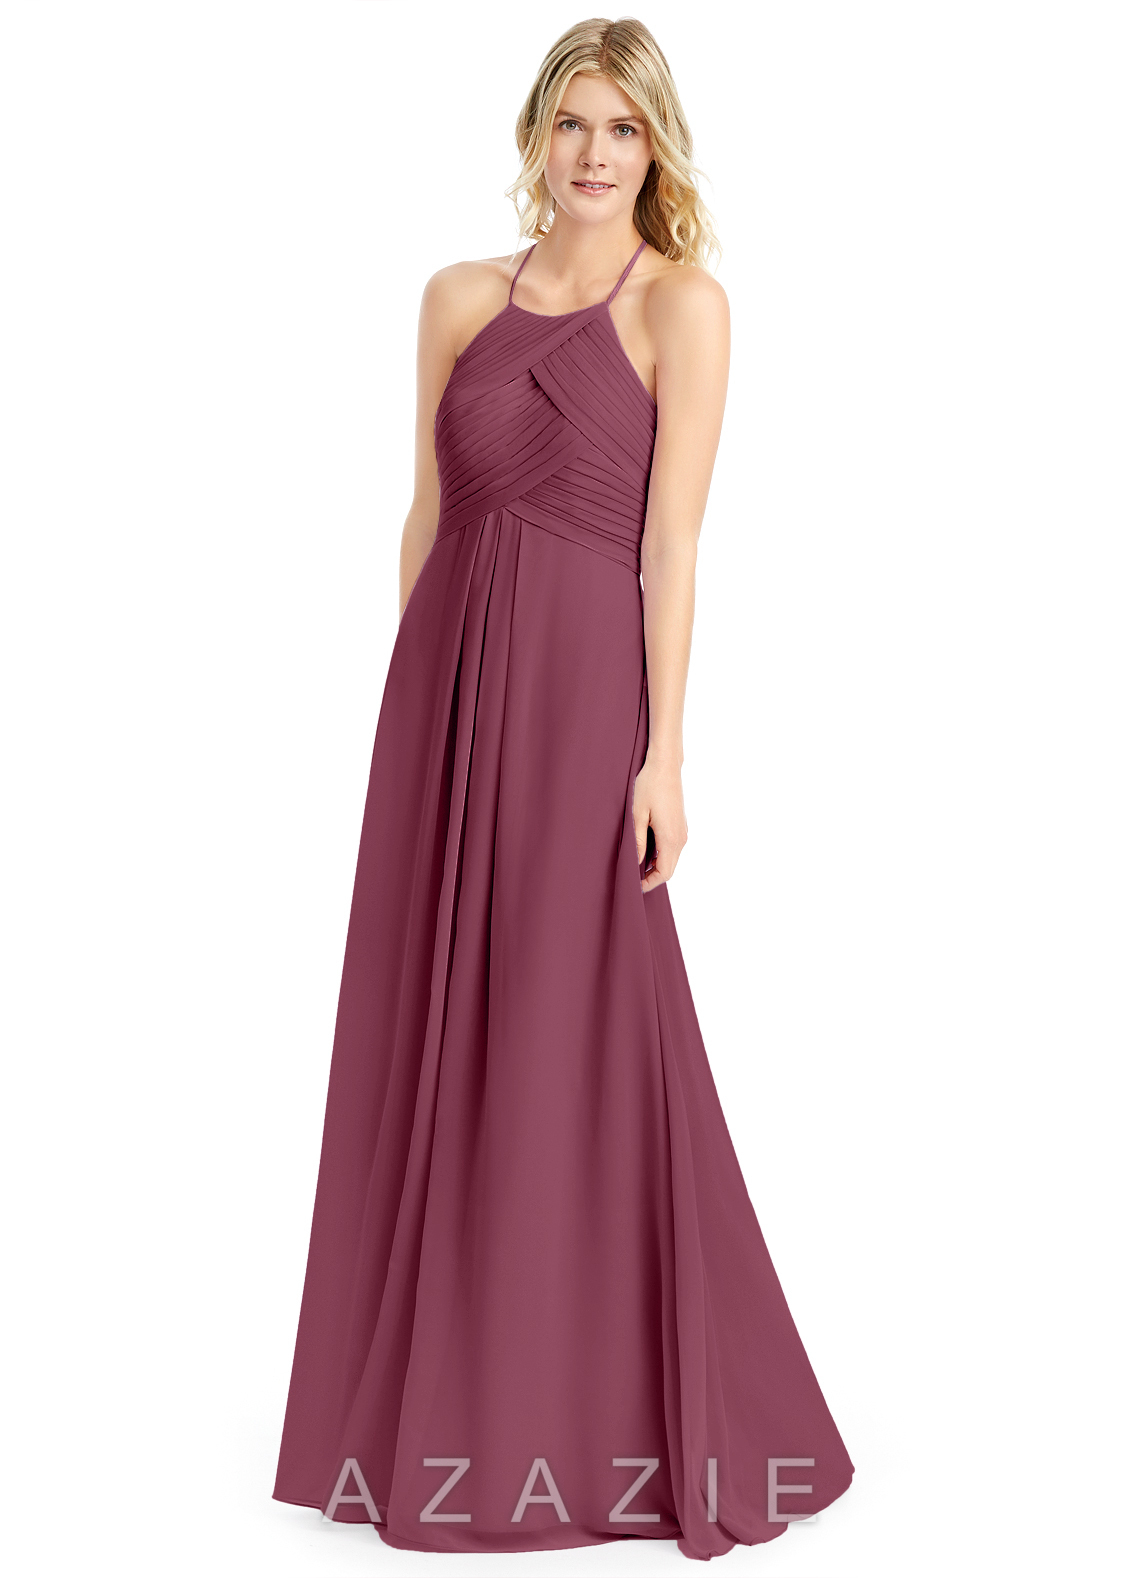 45d5a637231 Azazie Ginger Bridesmaid Dress - Mulberry